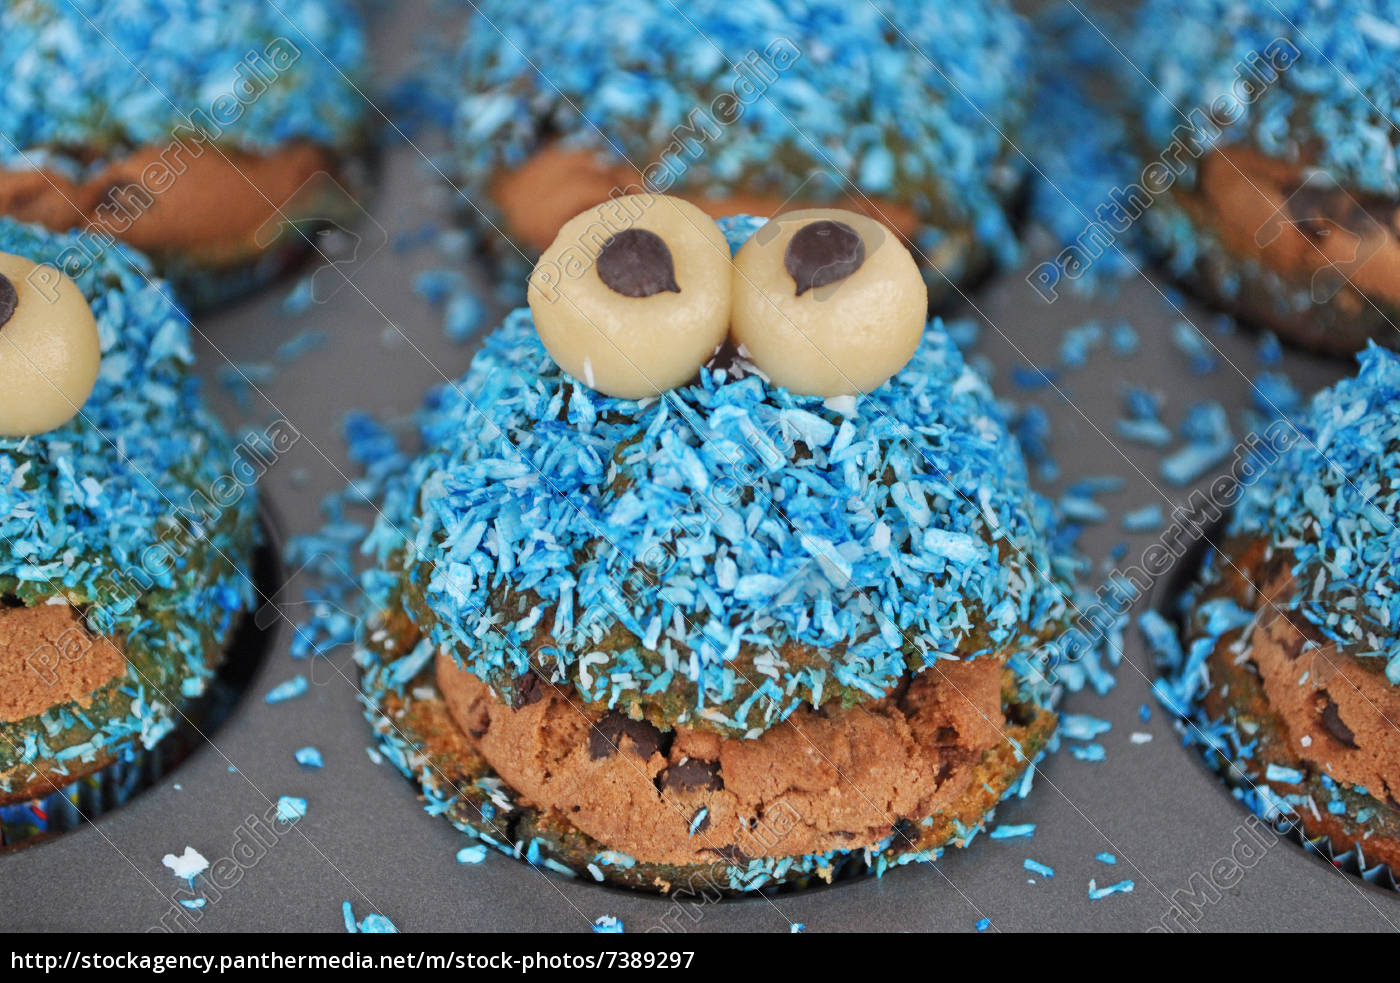 stockfoto 7389297 monster muffins